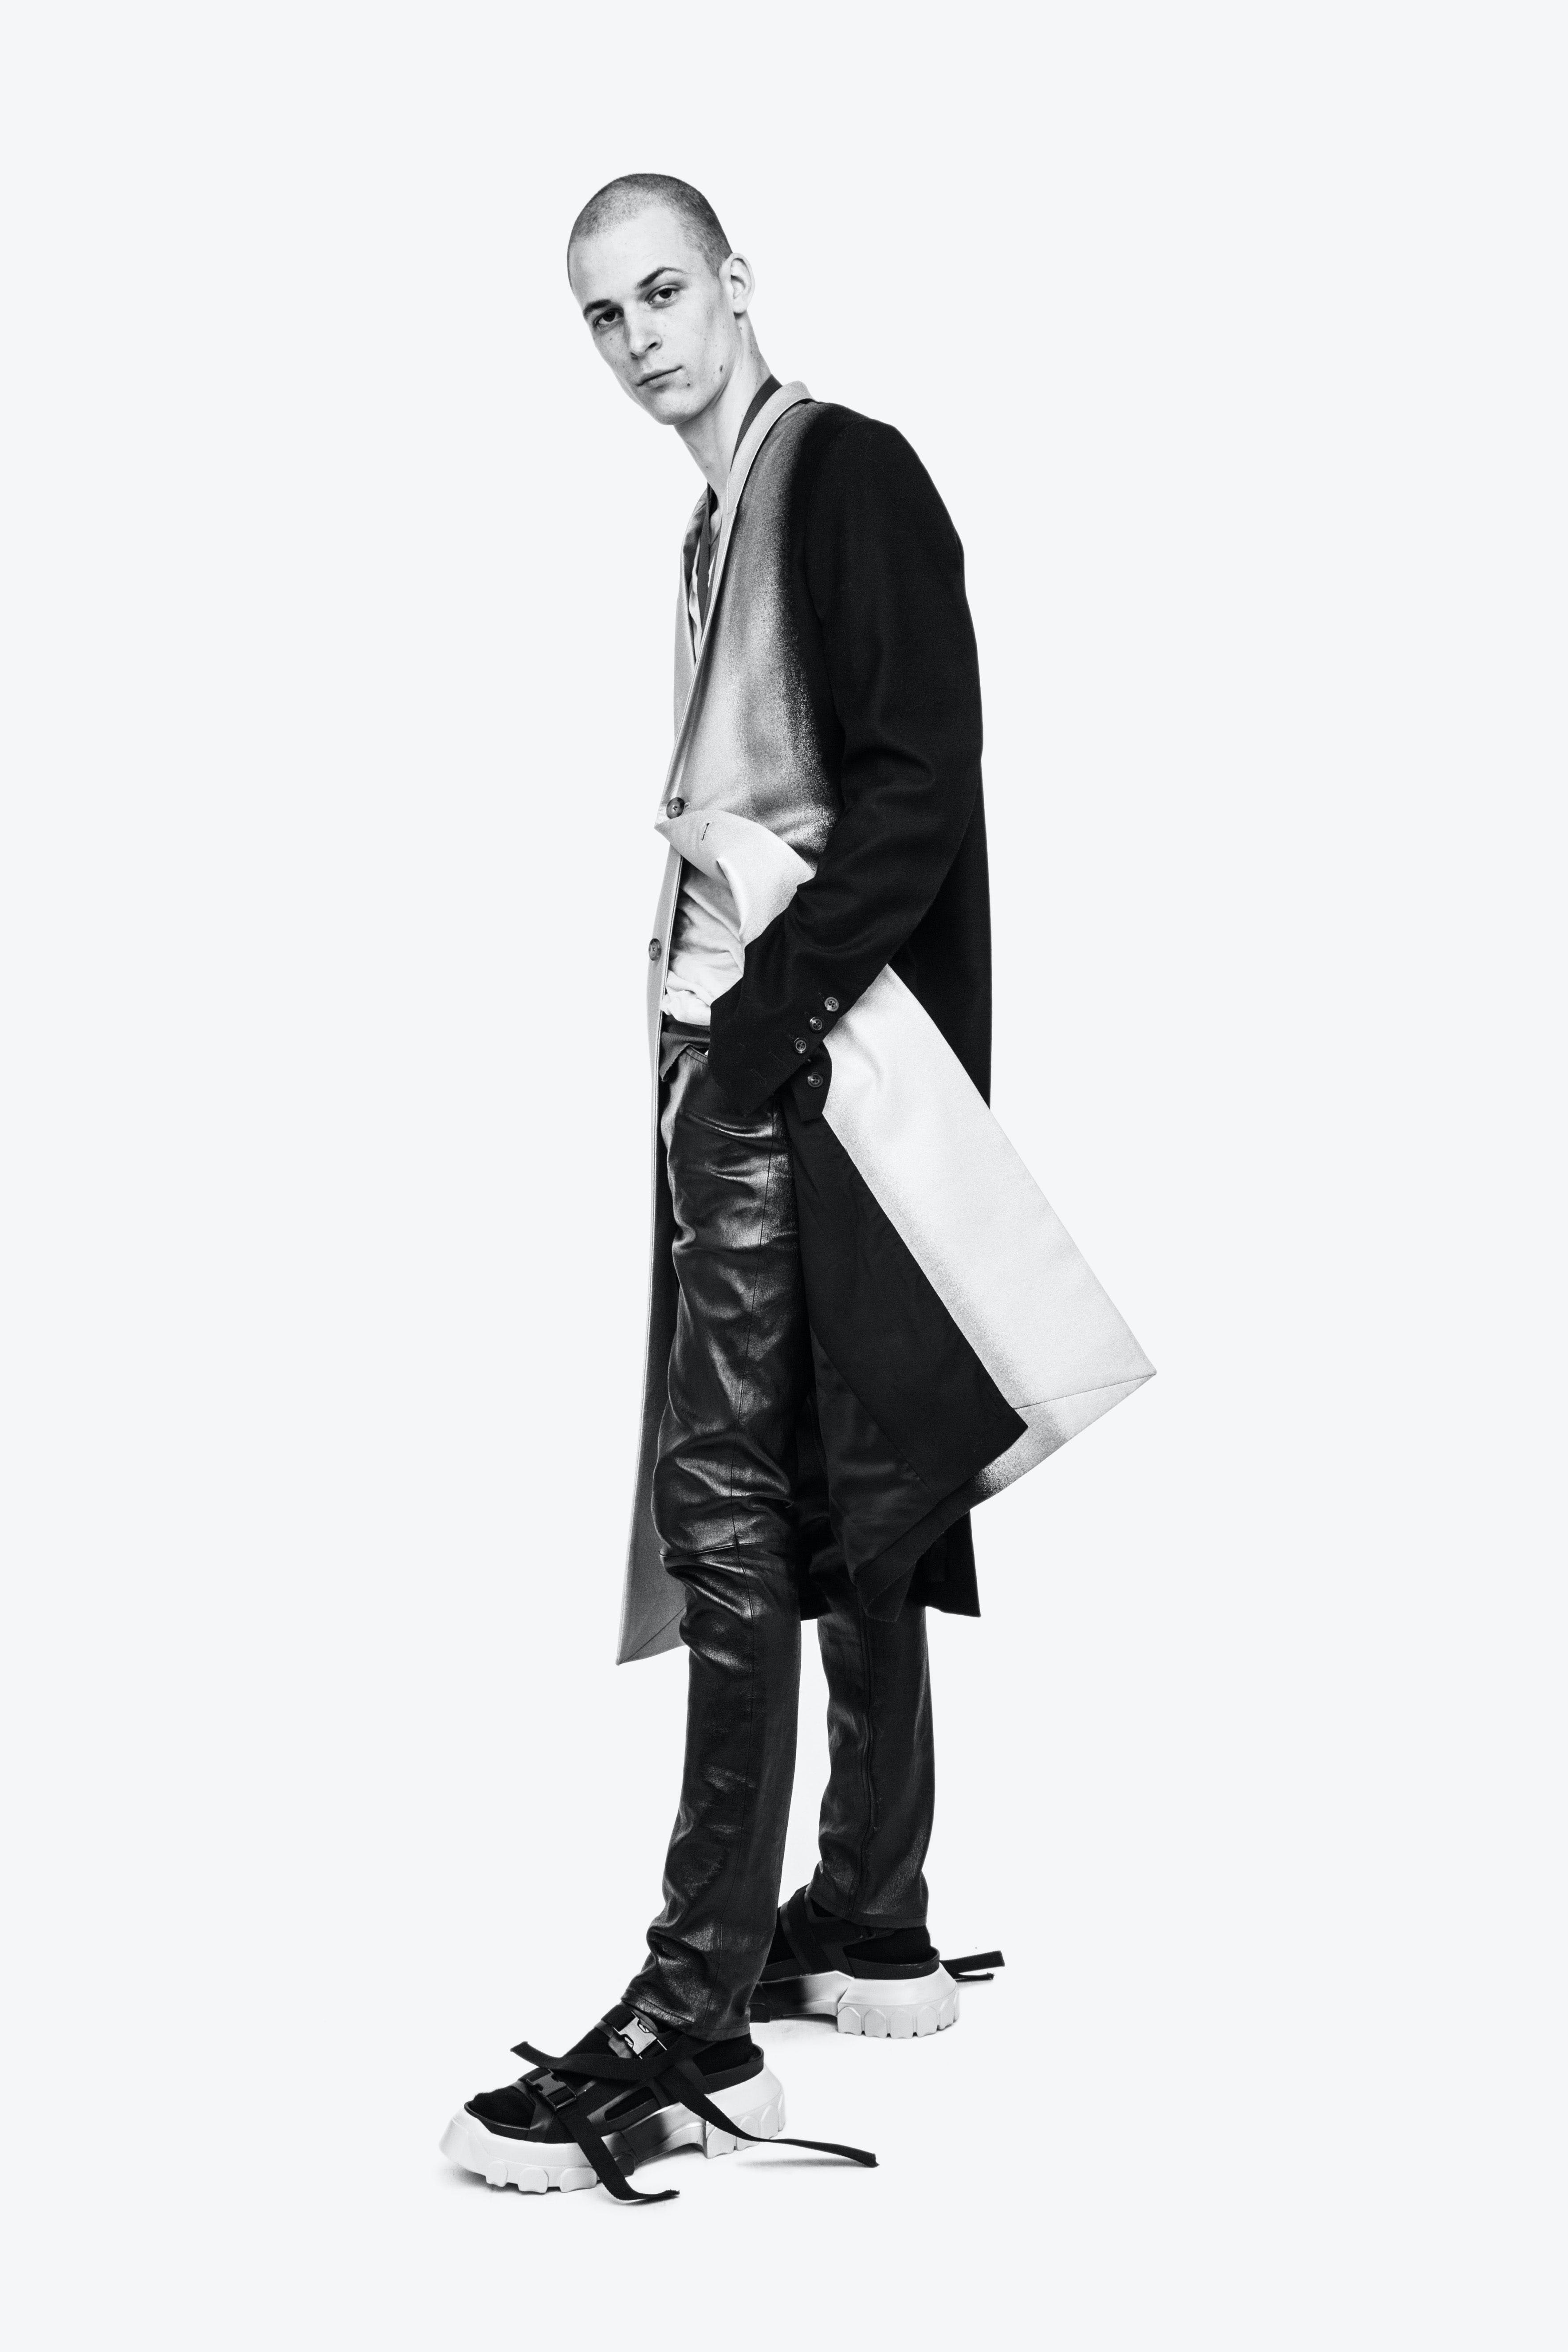 Rick Owens Campaign Below The Knee Black Silver Toned Coat Slim Leather Trousers in Black Long Strap Sandals Mens SS19 Babel